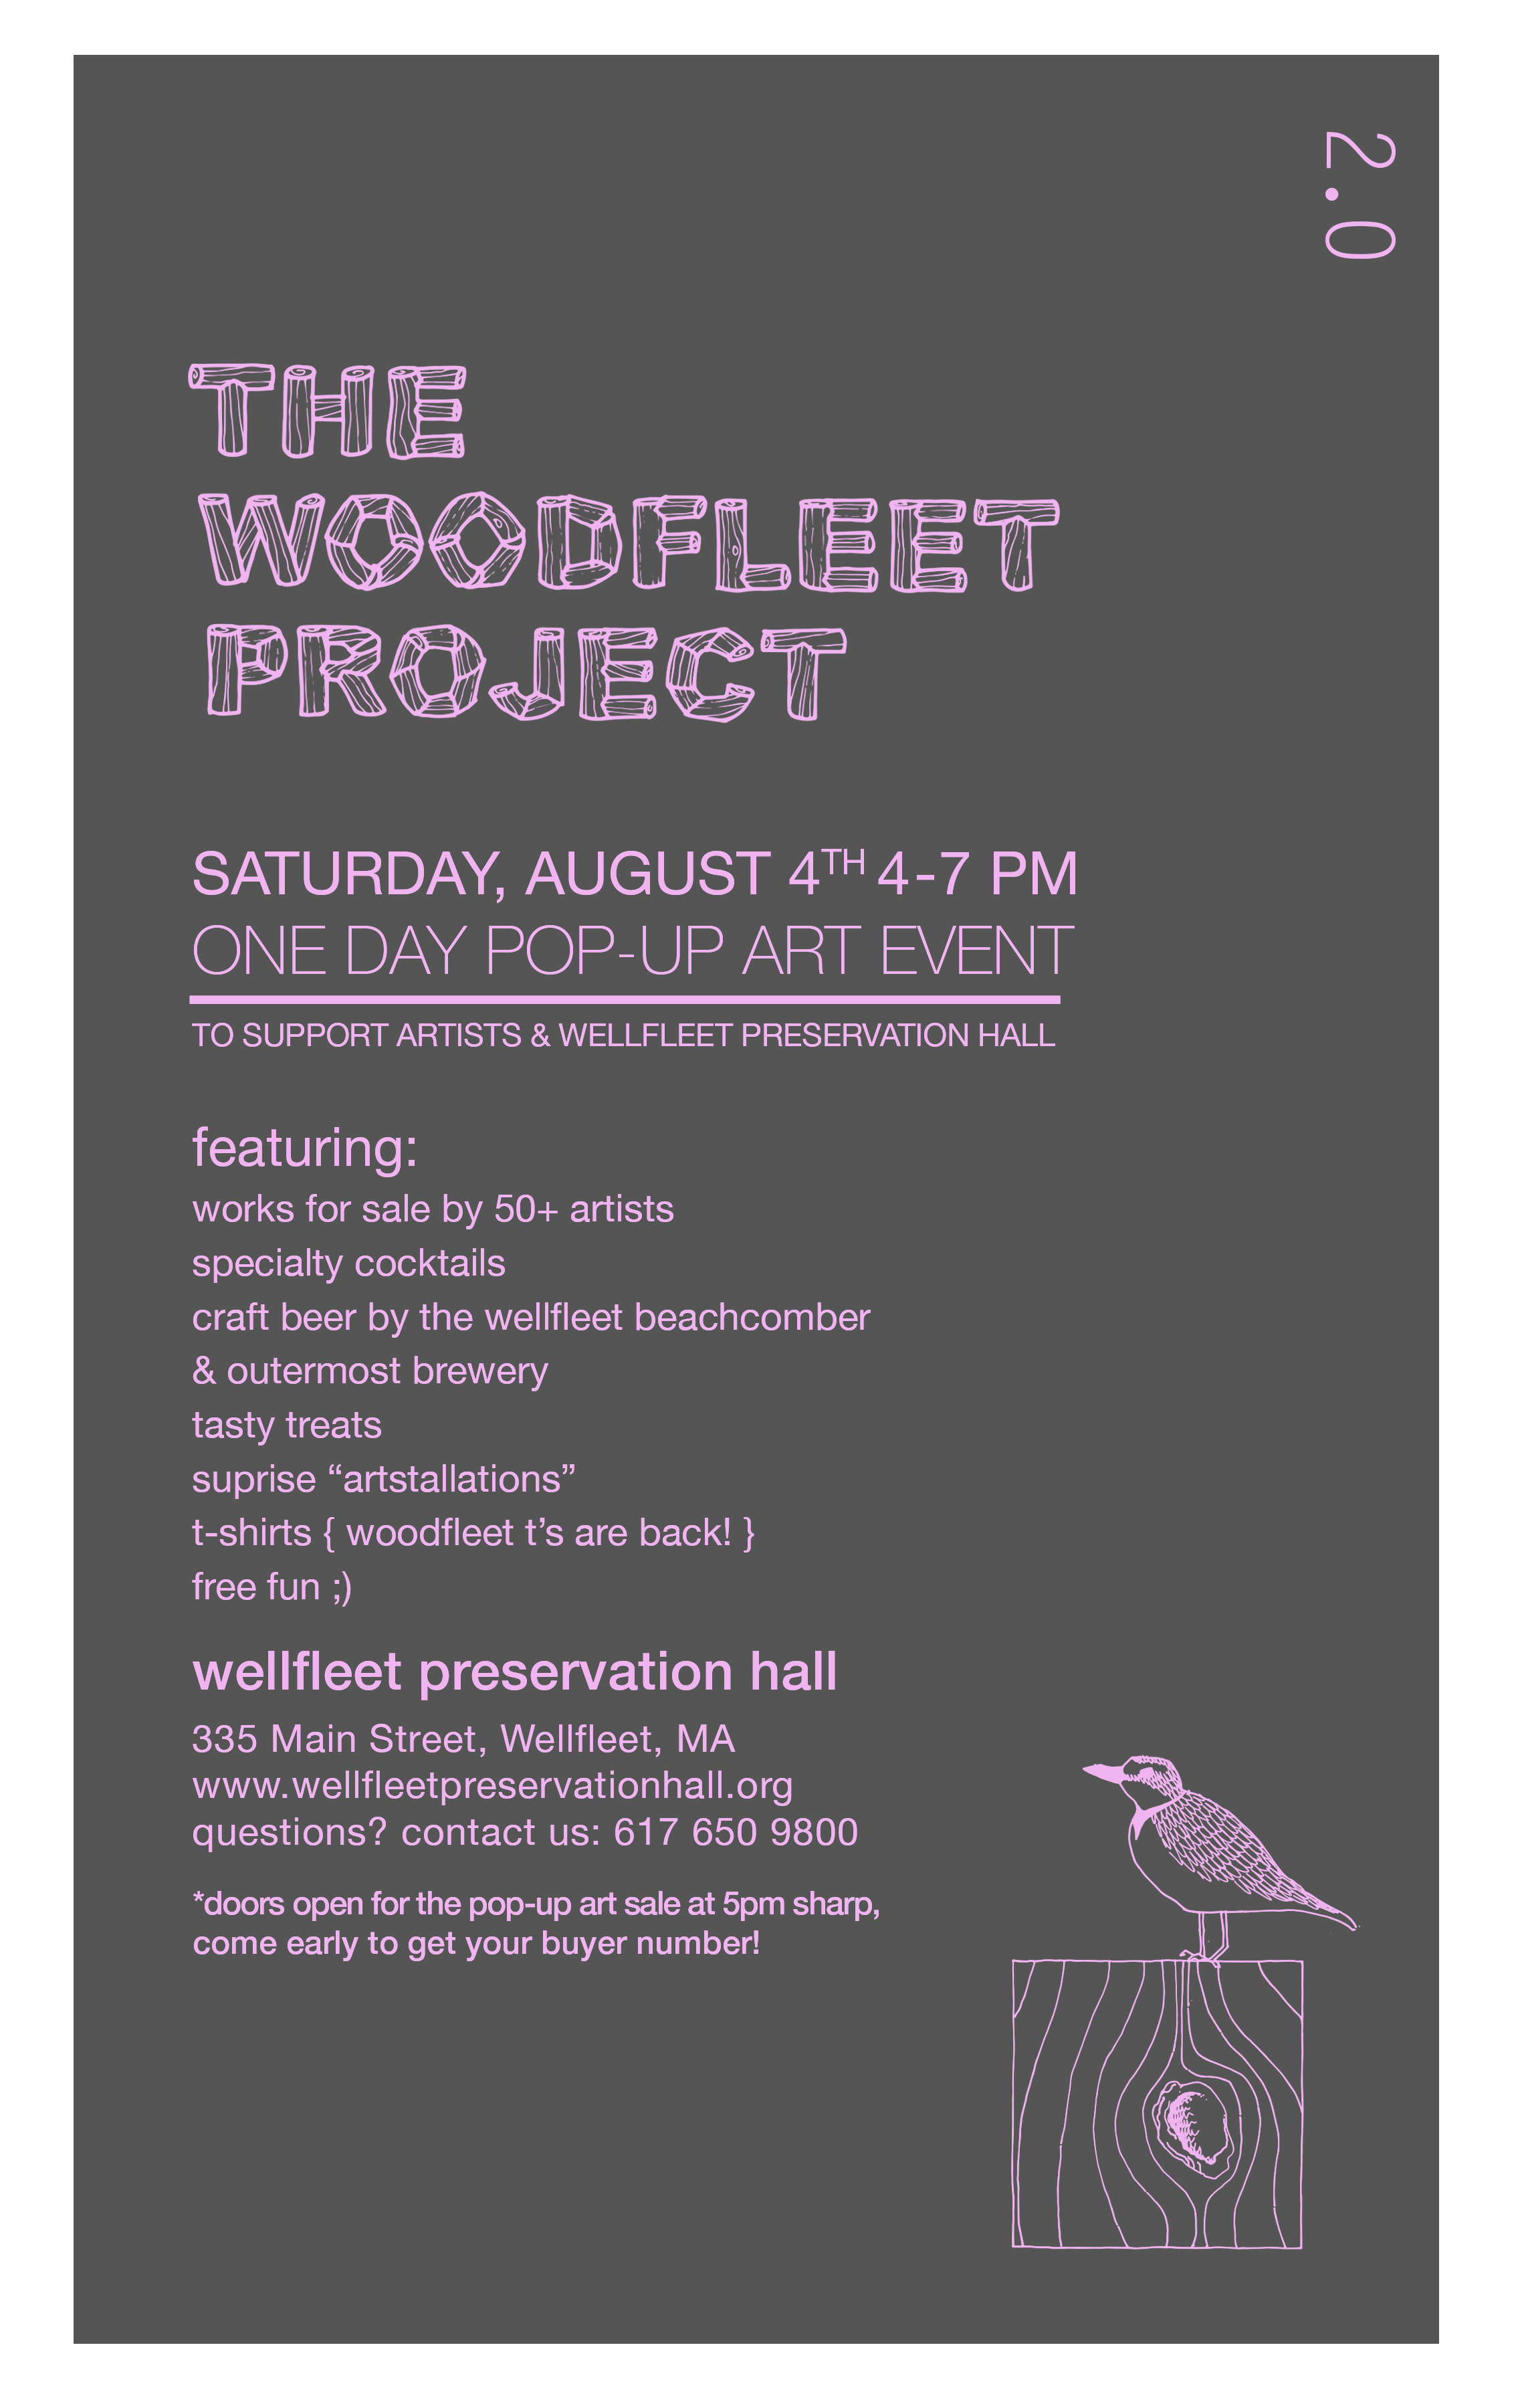 THE WOODFLEET PROJECT 2.0,  an interactive one-night-only art and community-building event at Wellfleet Preservation Hall on August 4, 2018 (4 - 7 PM).    An evening of affordable art for sale by artists from all over will be available at two set prices. Tasty treats, specialty cocktails, craft beer from Outermost Brewery and The Wellfleet Beachcomber will be available. We hope to see you there!